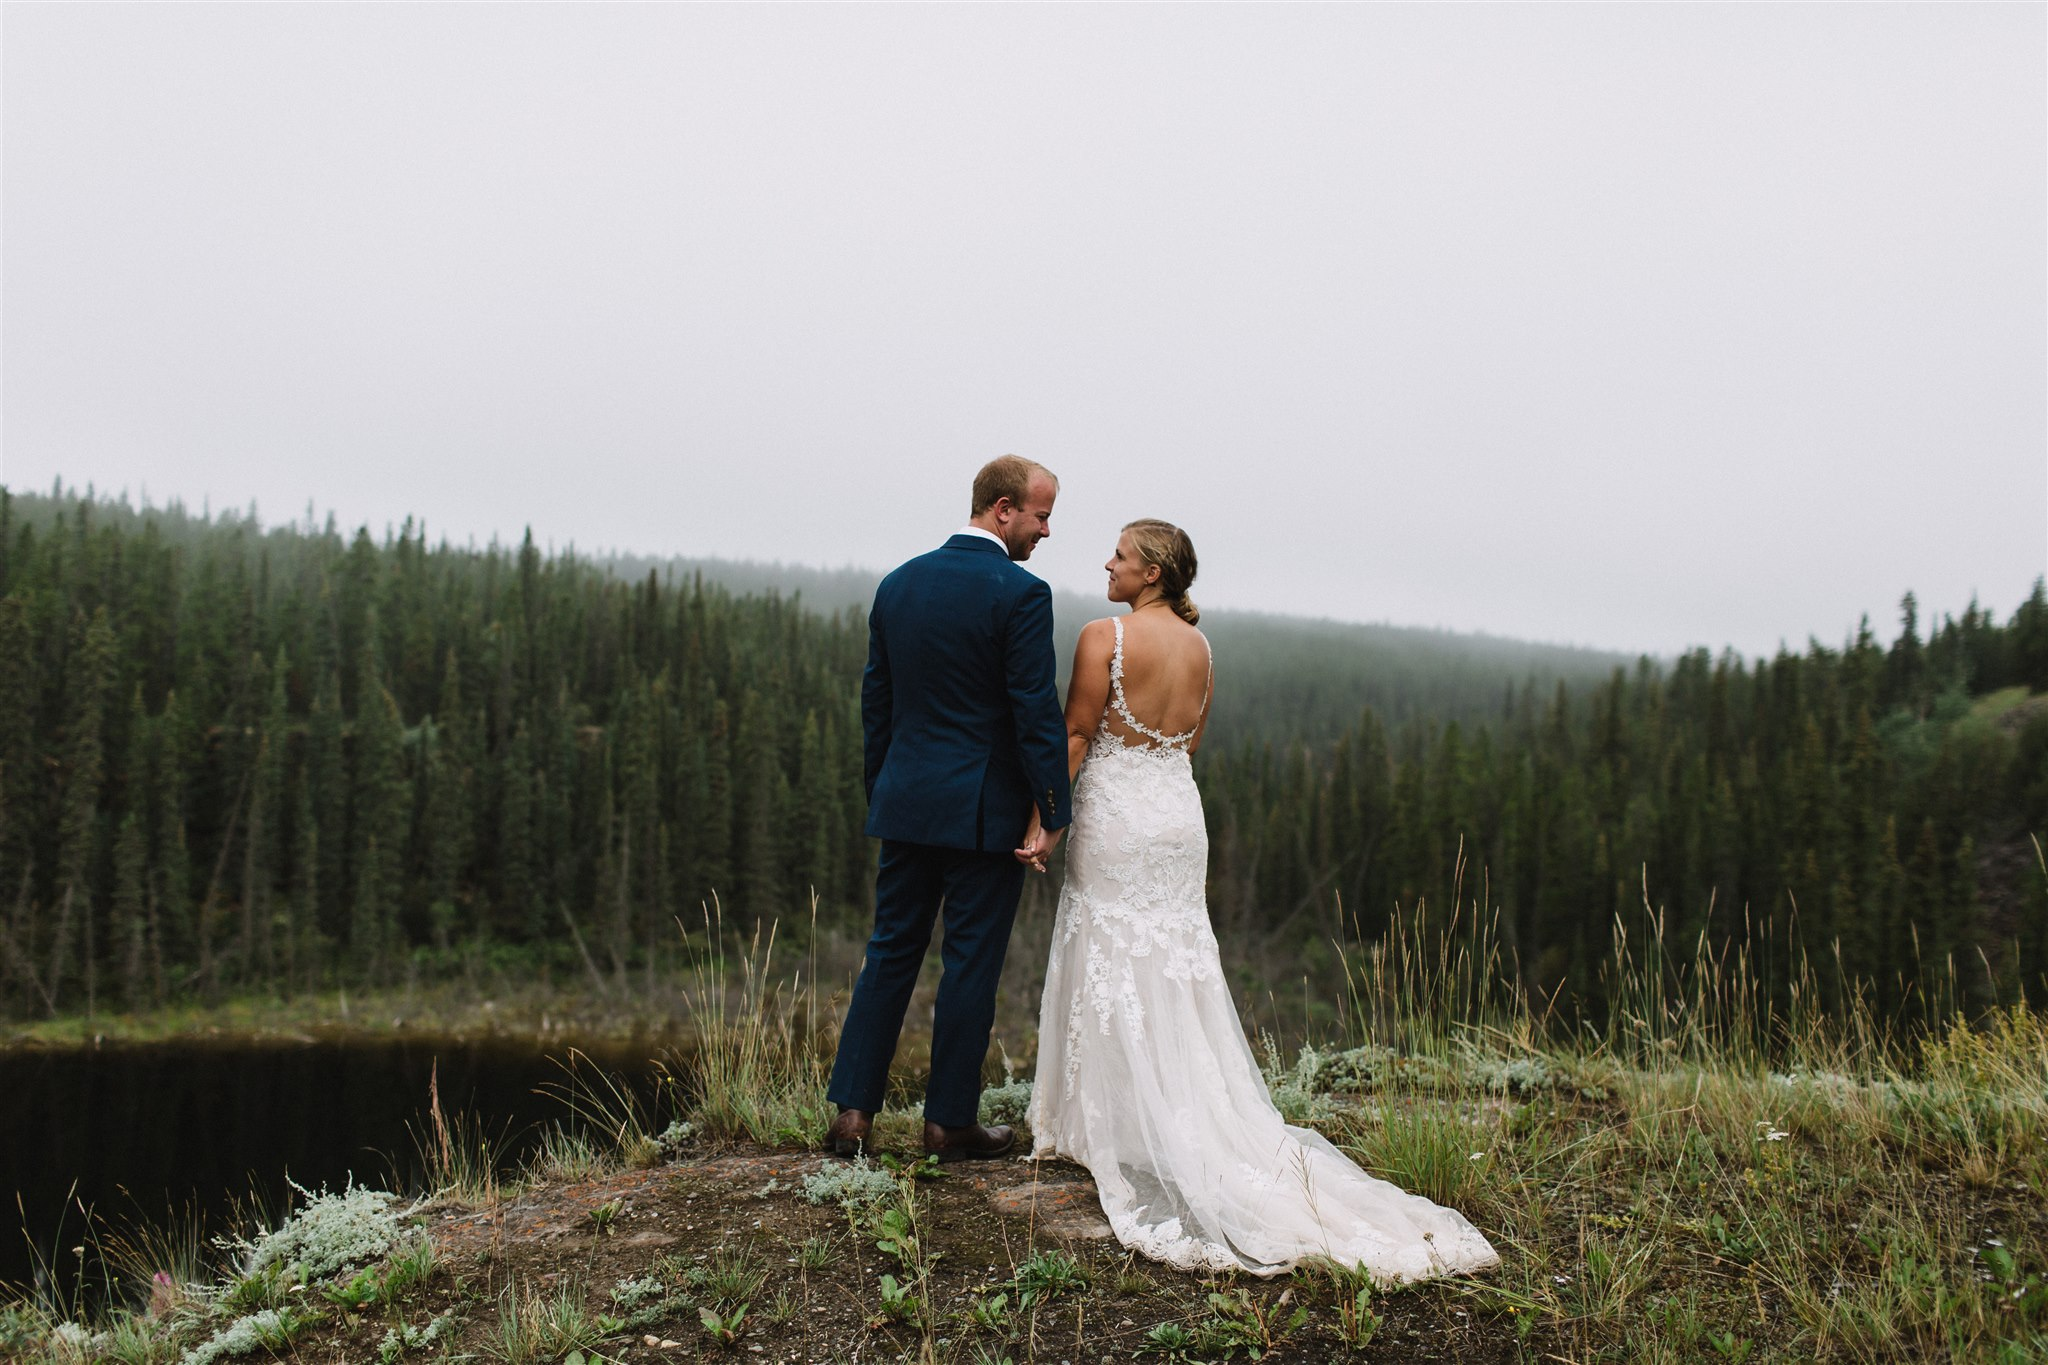 Yukon wedding photography by Tea & Oranges.